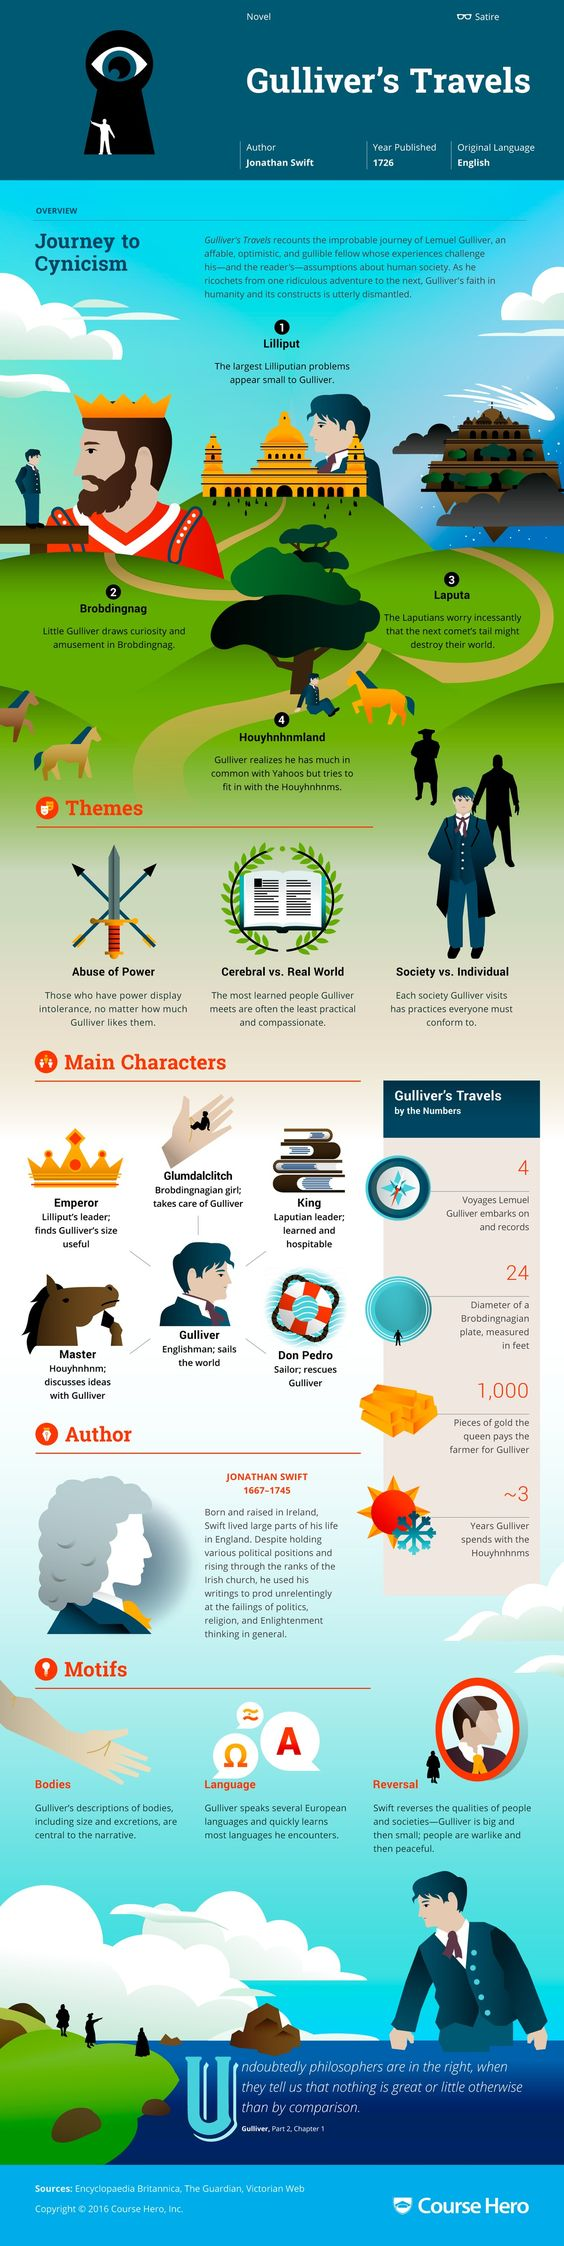 Gulliver's Travels Infographic | Course Hero